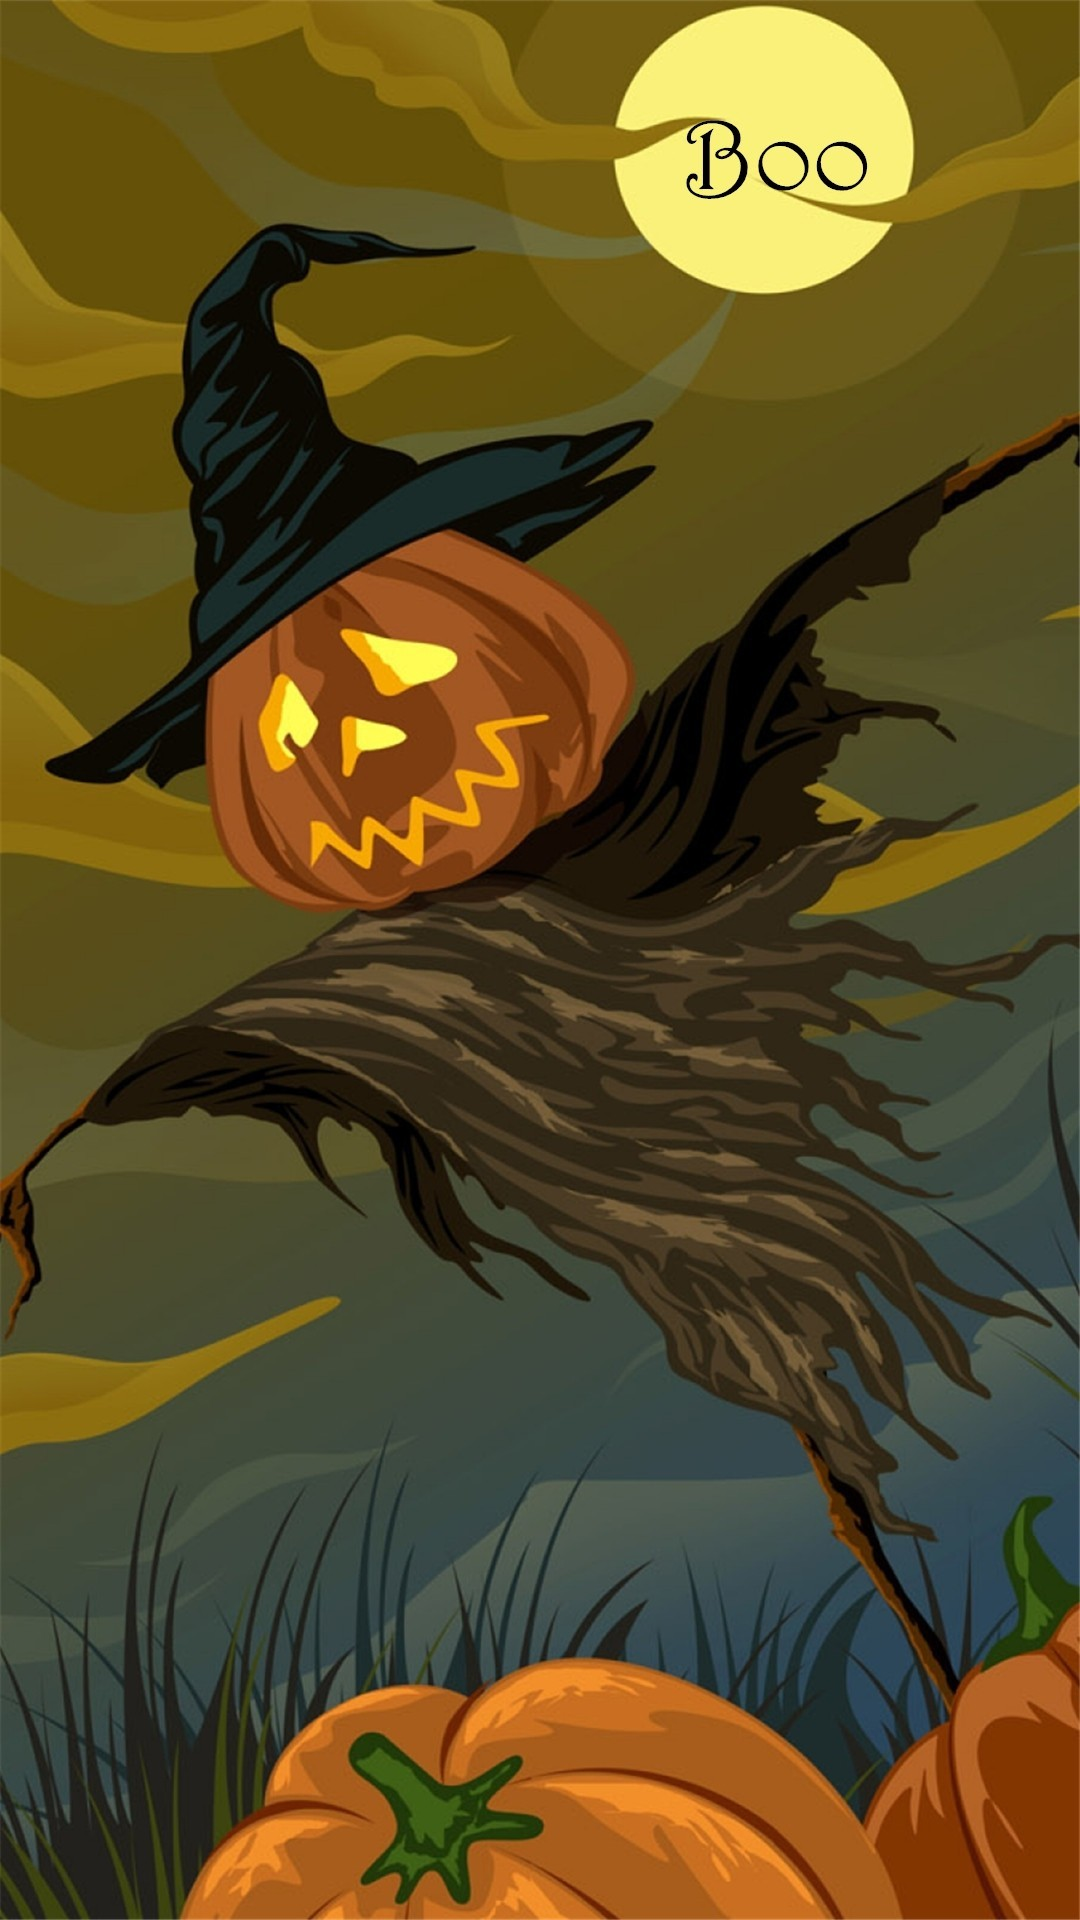 1080x1920 Scary Halloween pumpkin scarecrow Boo iPhone 6 plus wallpaper - moon, witch  hat #2014